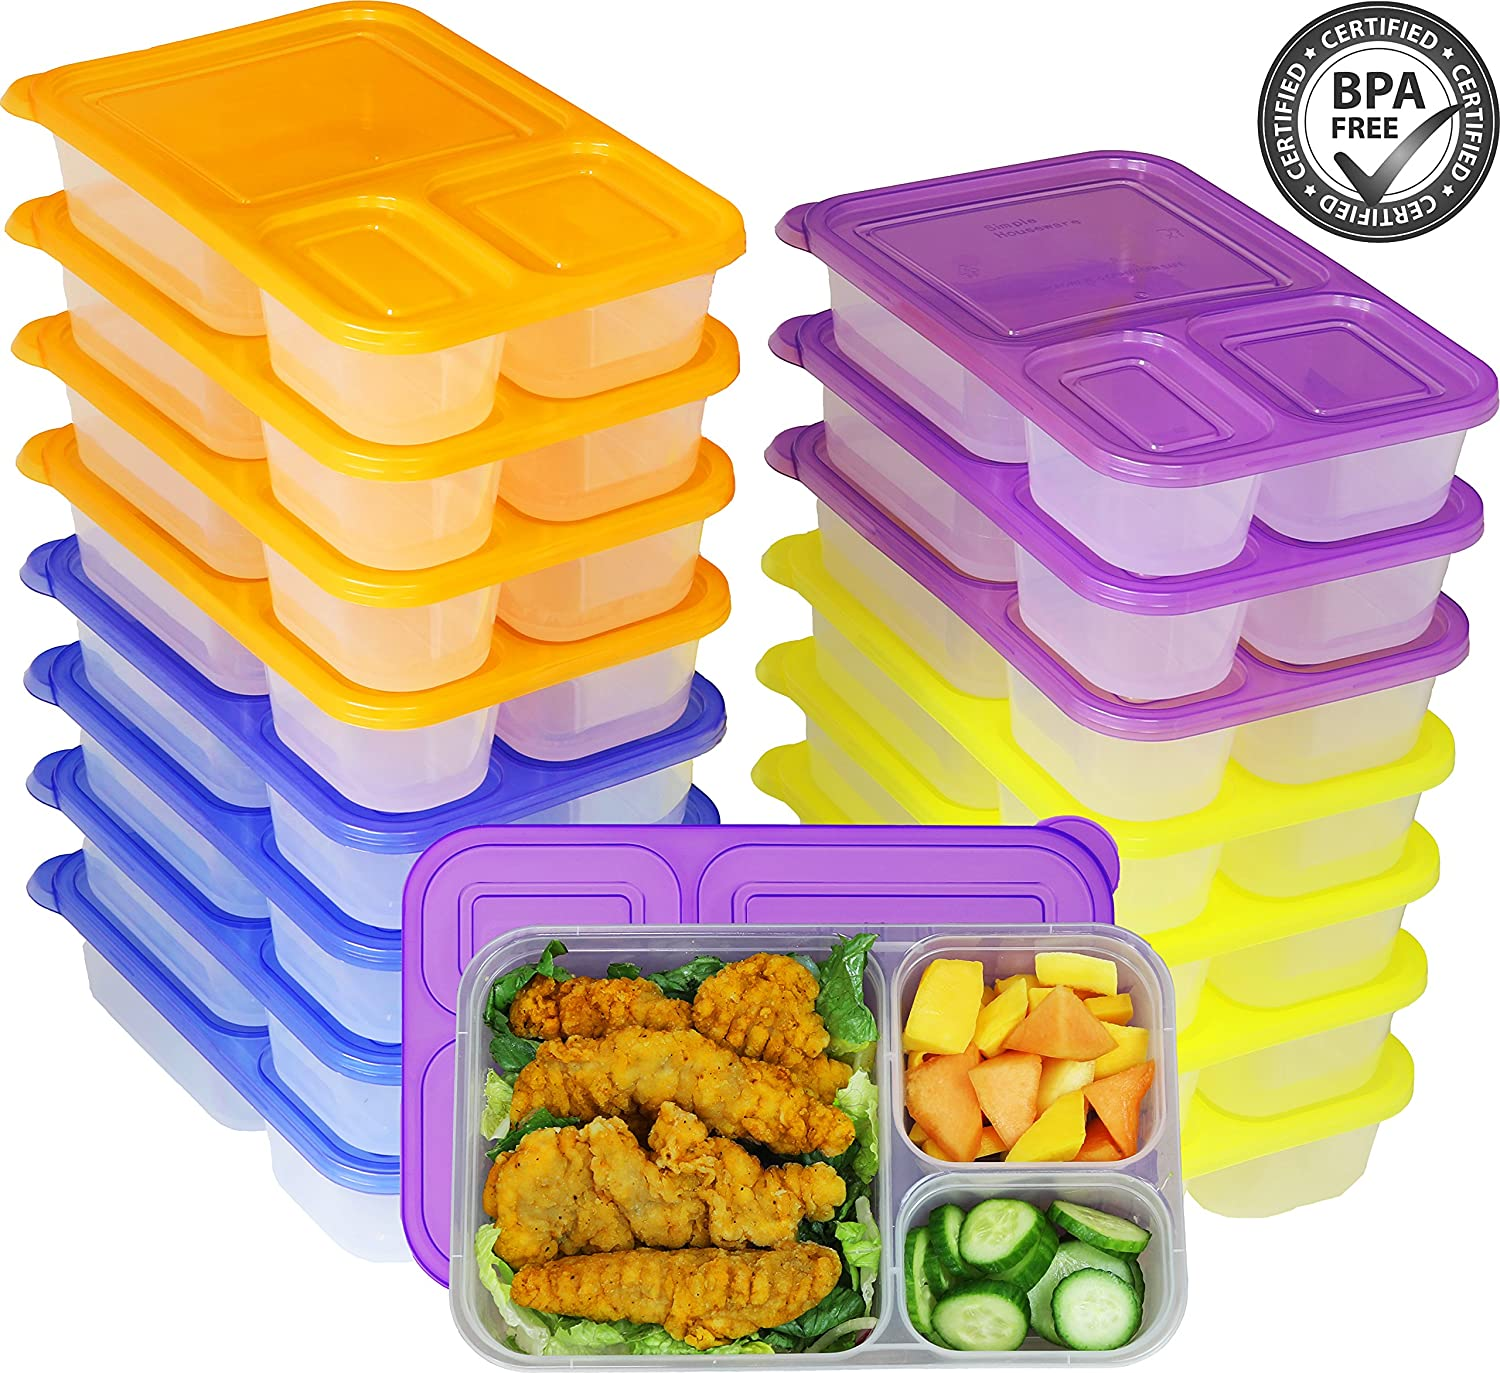 6 Pack - SimpleHouseware 3-Compartment Heavy Duty Bento Lunch Container Boxes, 36 ounces, 4 Color Simple Houseware KF-006-1